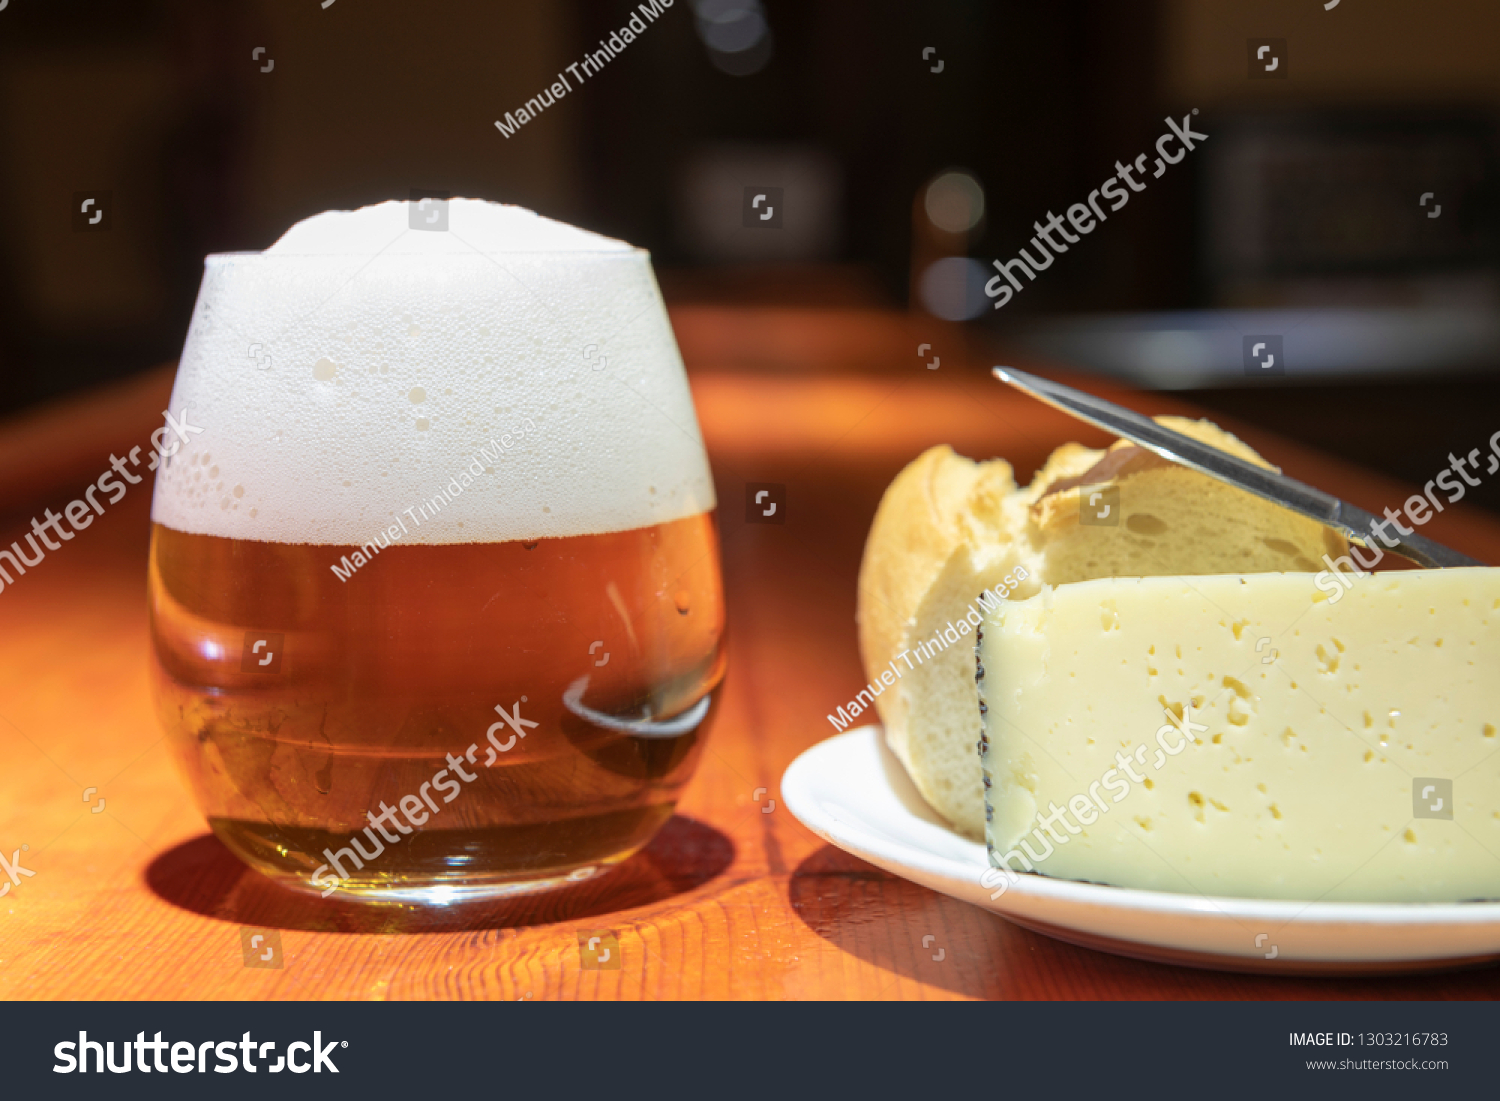 Cheese appetizer and beer